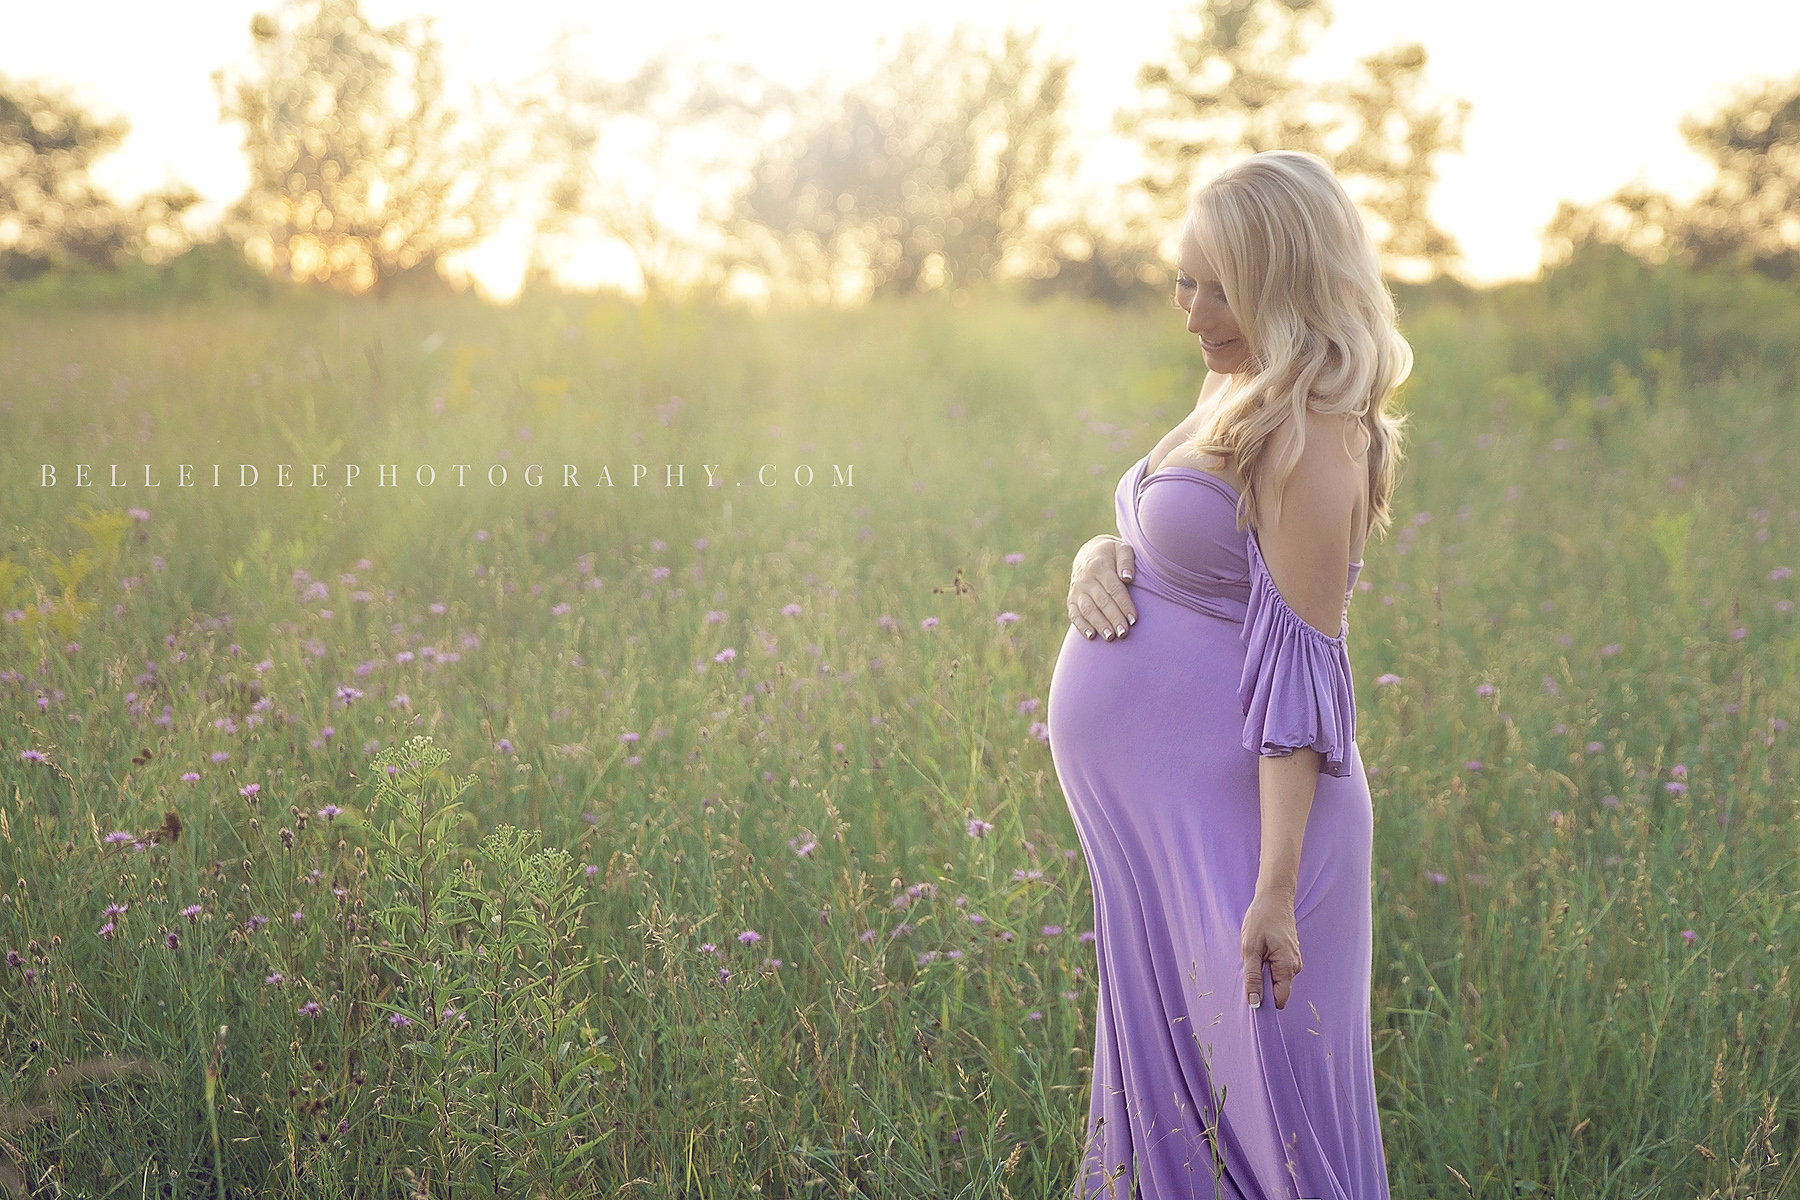 Top Pregnancy Photographer in Buffalo, NY